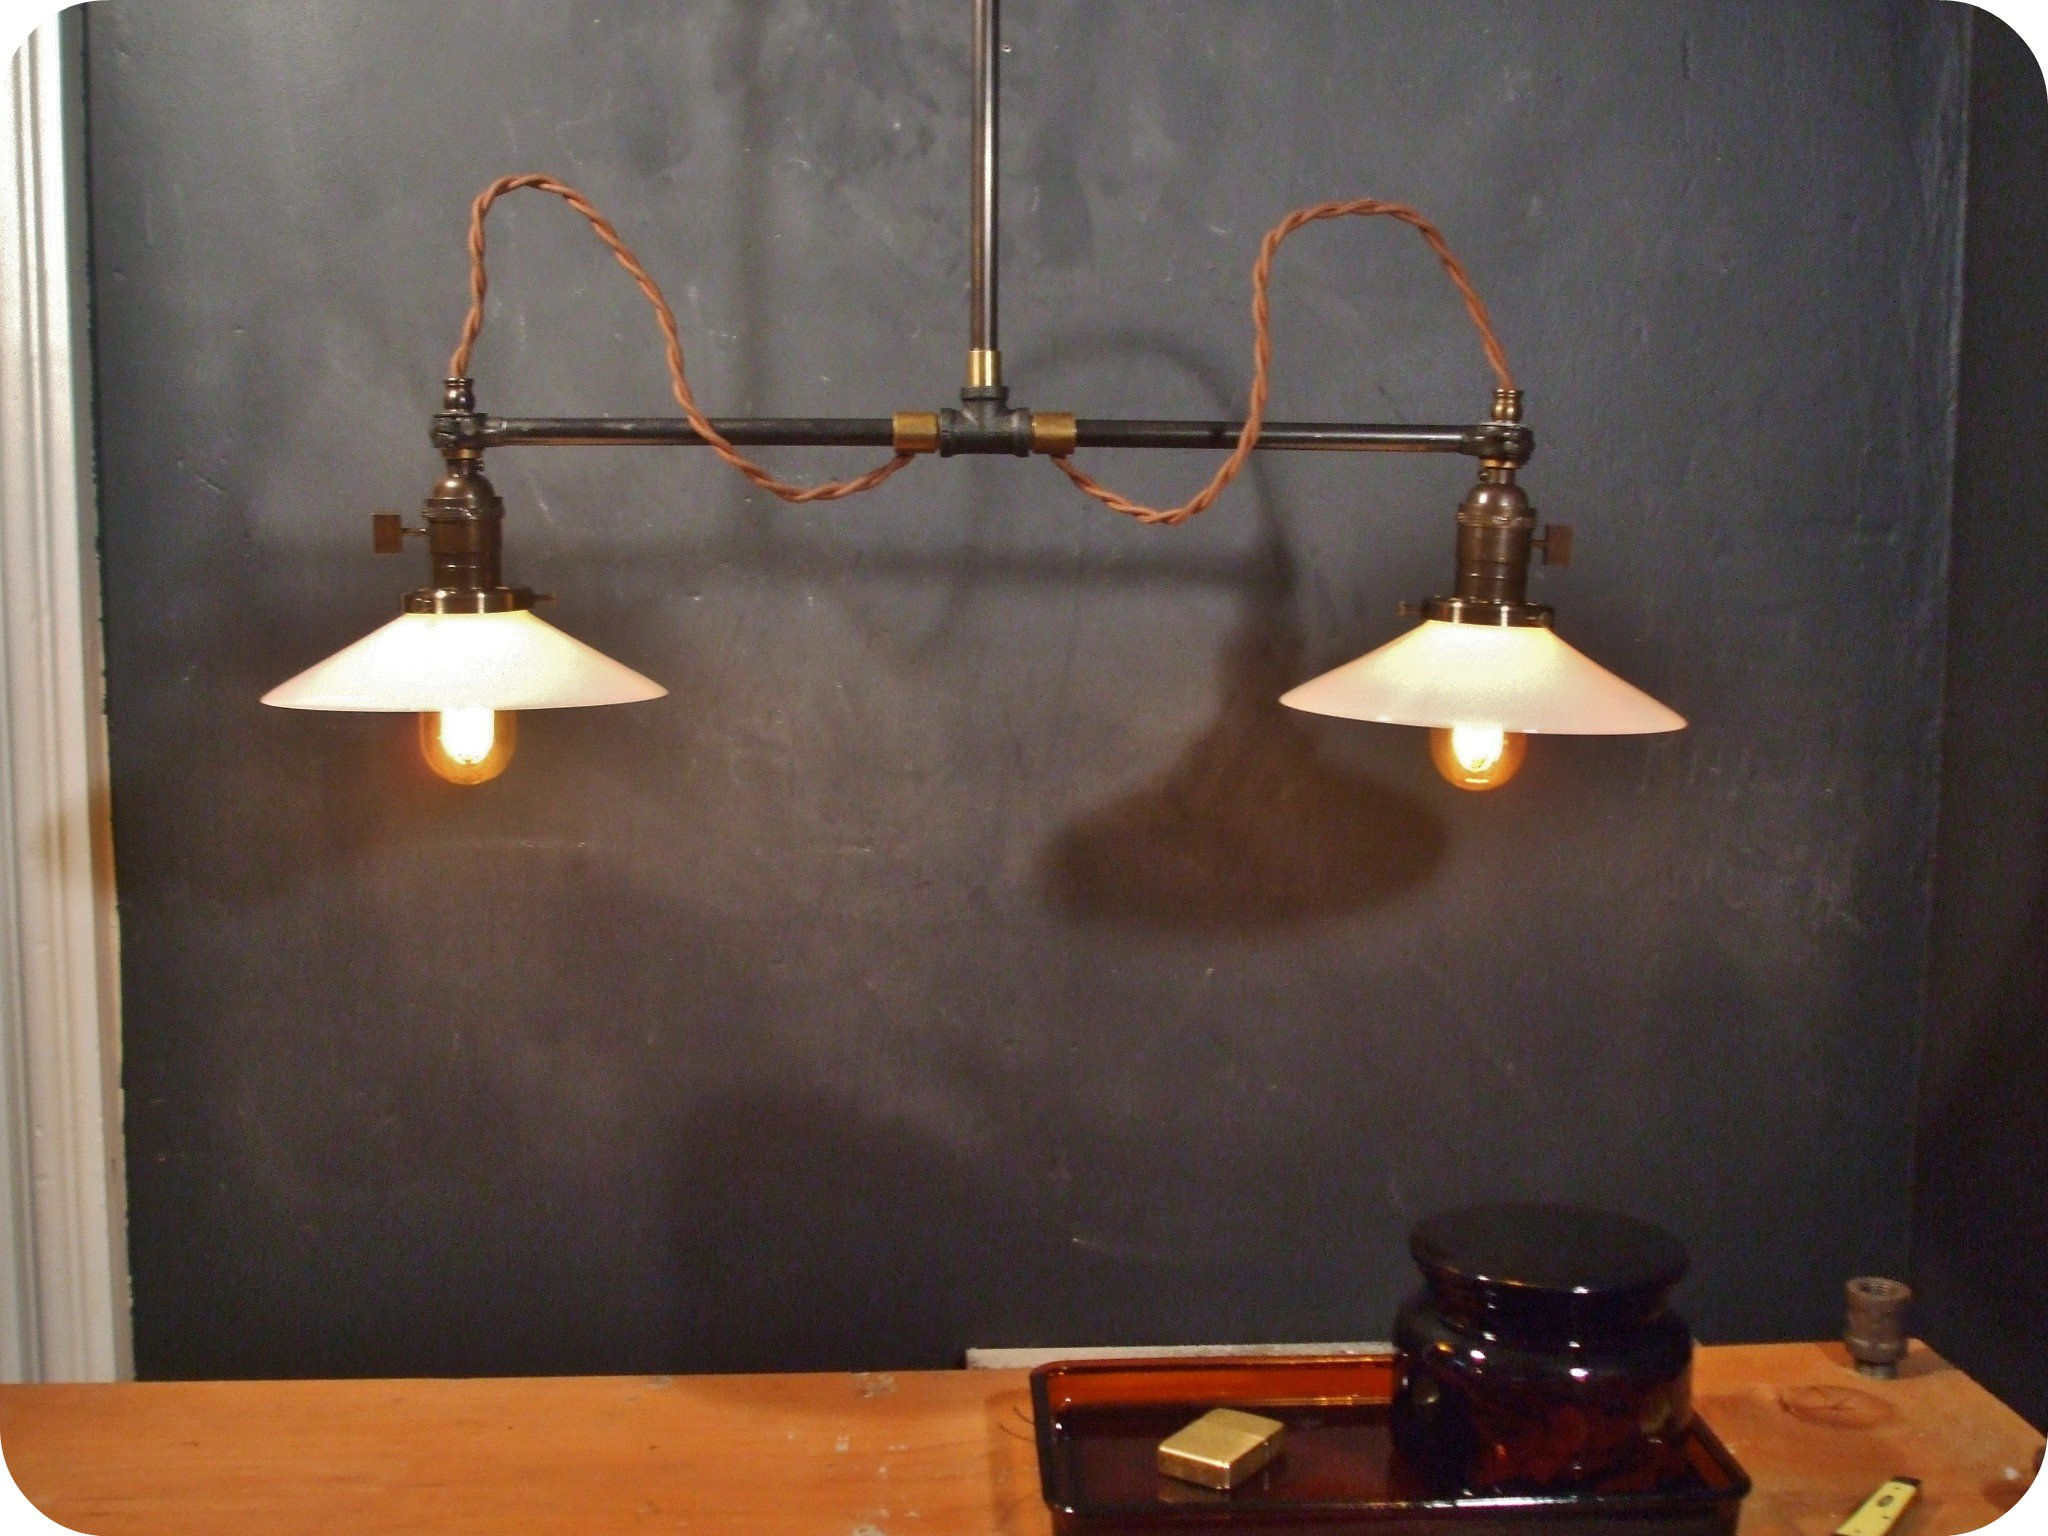 Sink delta kitchen faucets home depot bathroom wall heaters electric - Vintage Industrial Double Shade Ceiling Sconce Machine Age Flat Shade Pendant Lamp Light Double